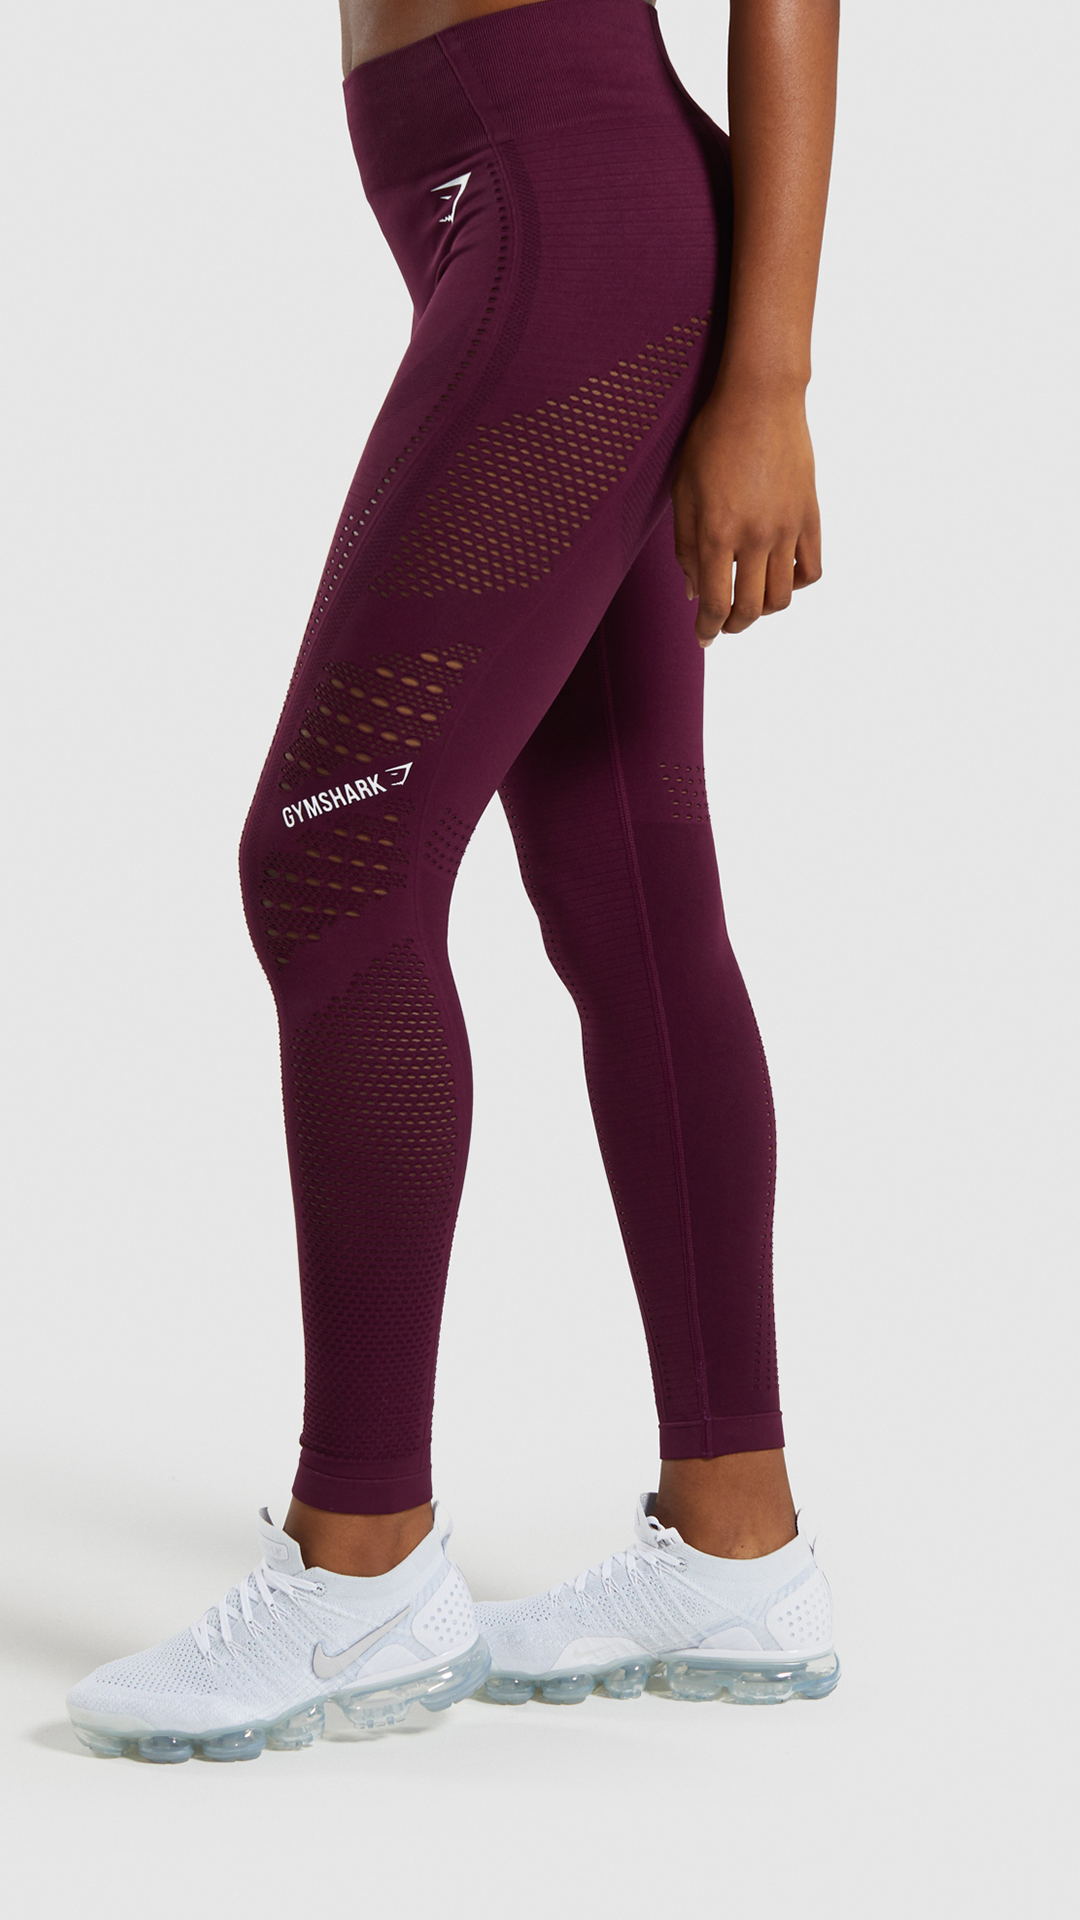 5389925ba3a25 A spicy new Flawless set! These Flawless Tights in Dark Ruby ,are our new  favourite. #Gymshark #Gym #Sweat #Train #Perform #Seamless #Exercise  #Strength ...